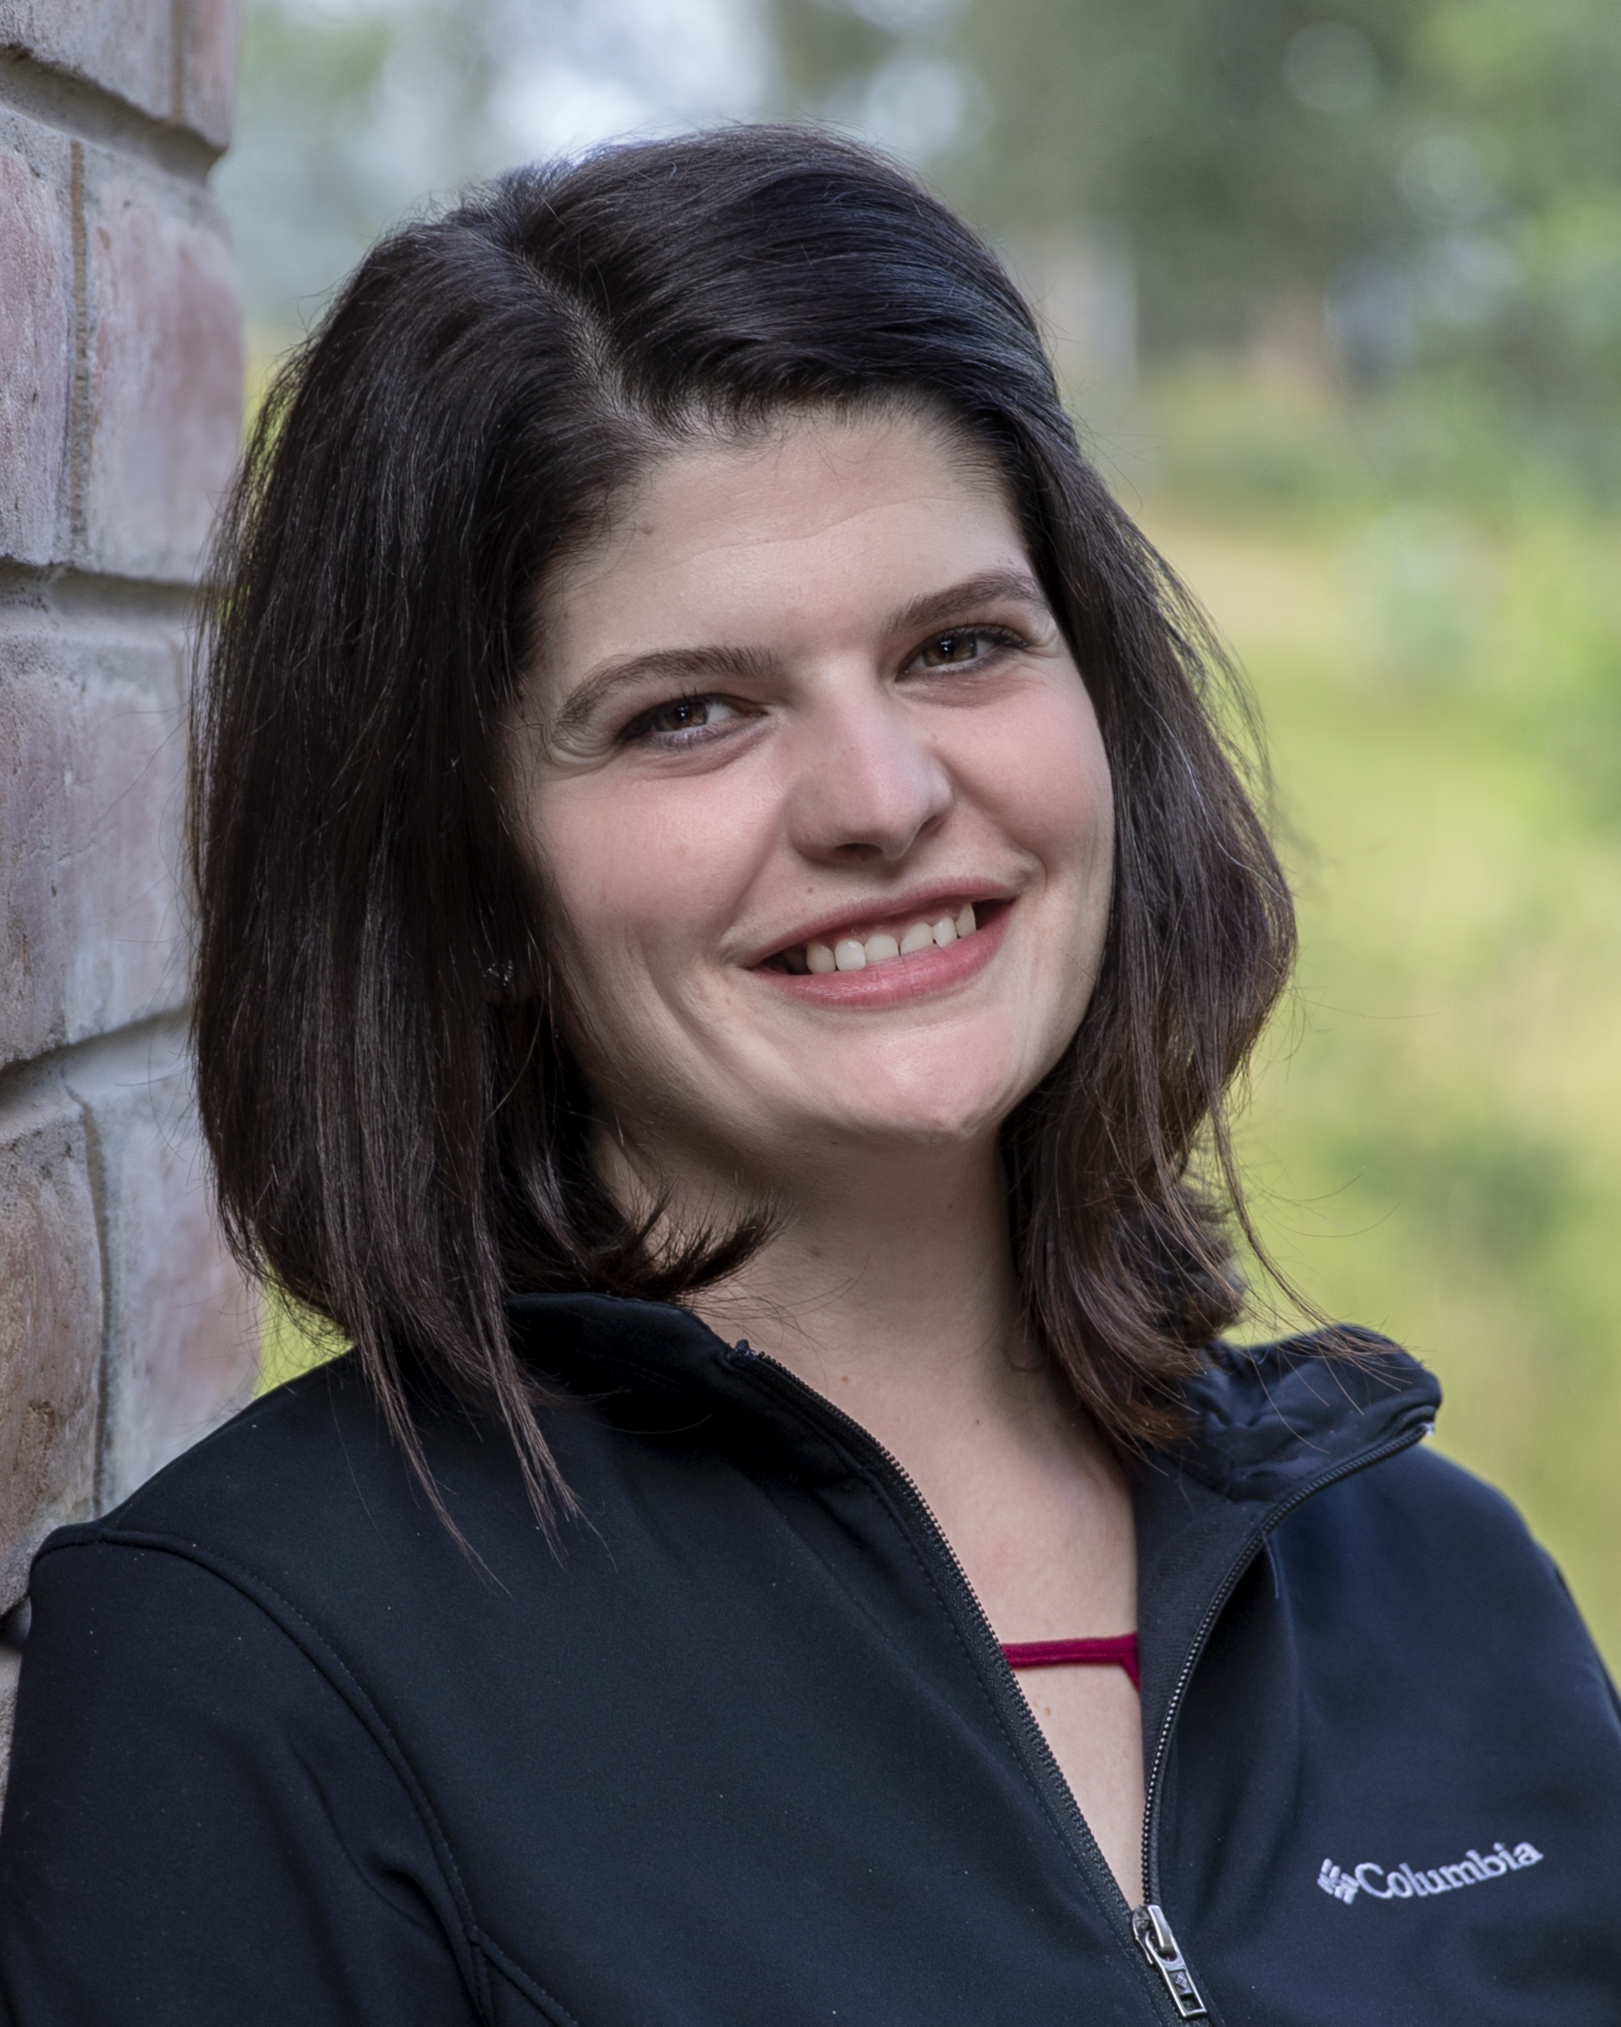 Stephanie Brookshire - Family Therapist - Stephanie Brookshire has served at Hacienda of Hope since 2015. Stephanie grew up in Fort Worth, Texas. She received her bachelor's degree in psychology from Texas A&M University and completed her MSW in 2018.